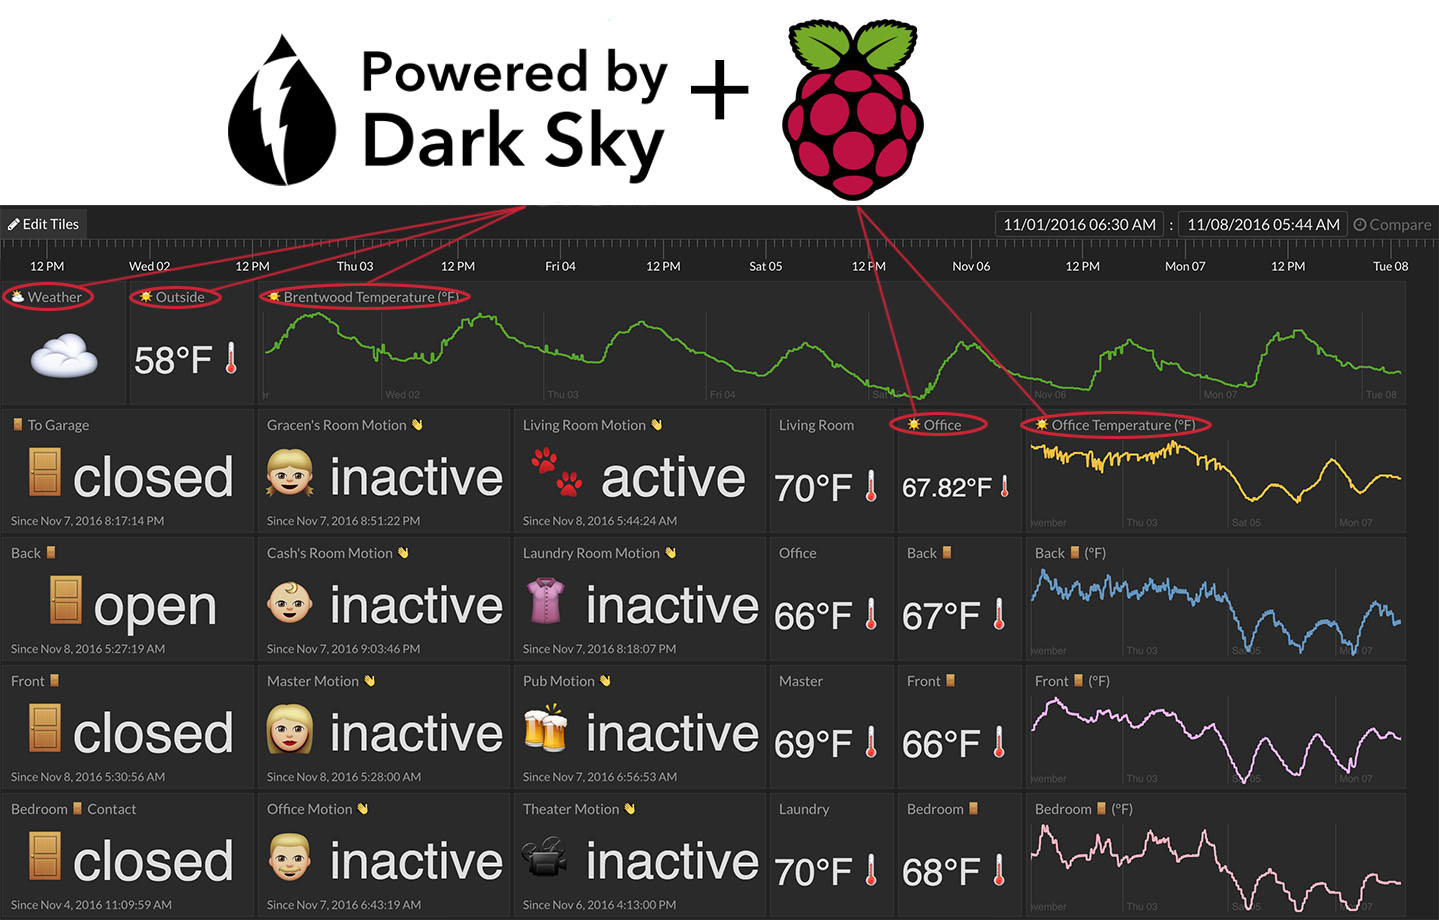 DarkSky_Pi_ST_copy.jpg